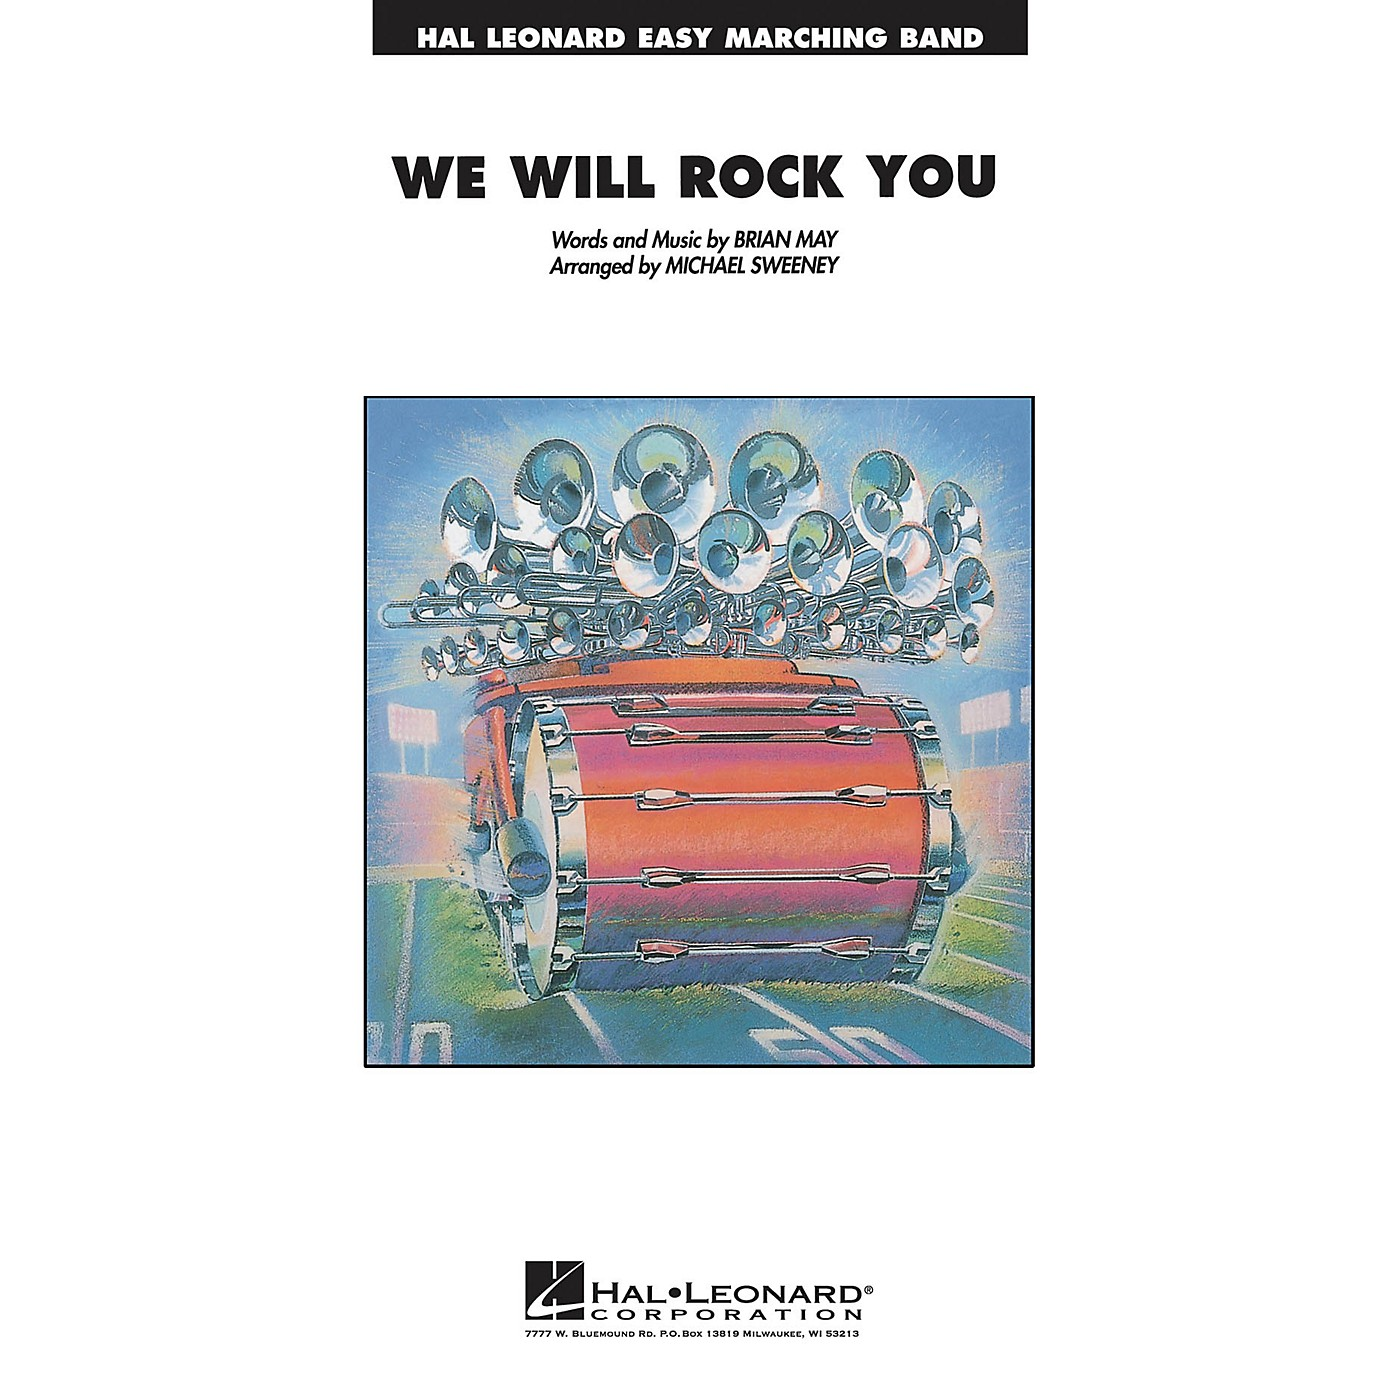 Hal Leonard We Will Rock You Marching Band Level 2-3 Arranged by Michael Sweeney thumbnail